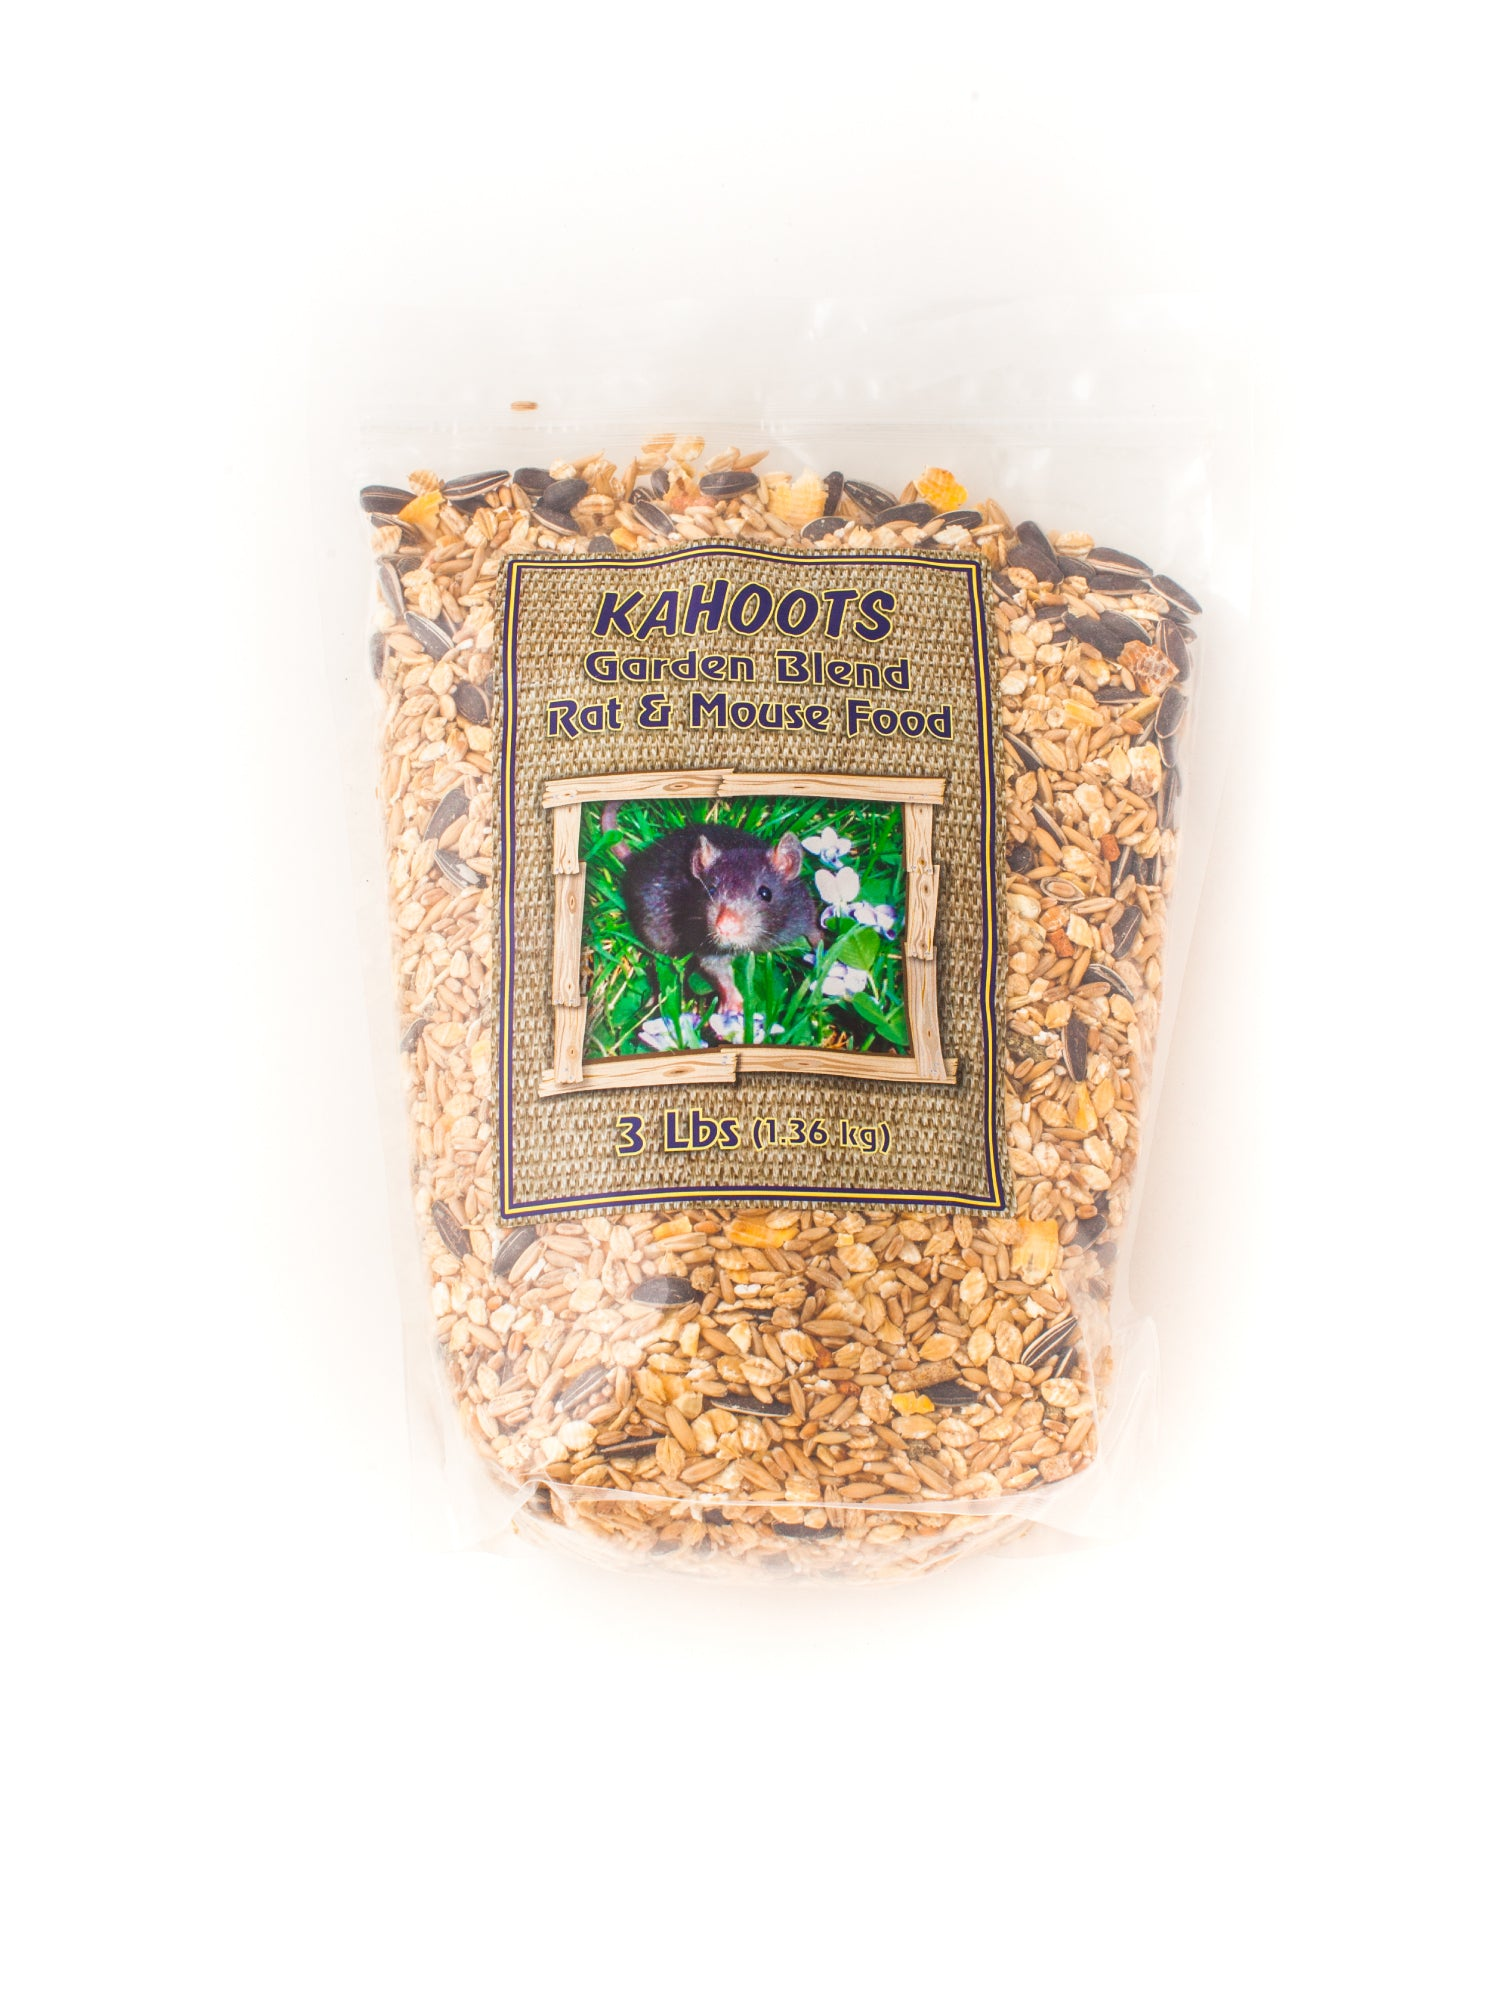 Rat and mouse food blend in bag. Picture of garden mouse on front label